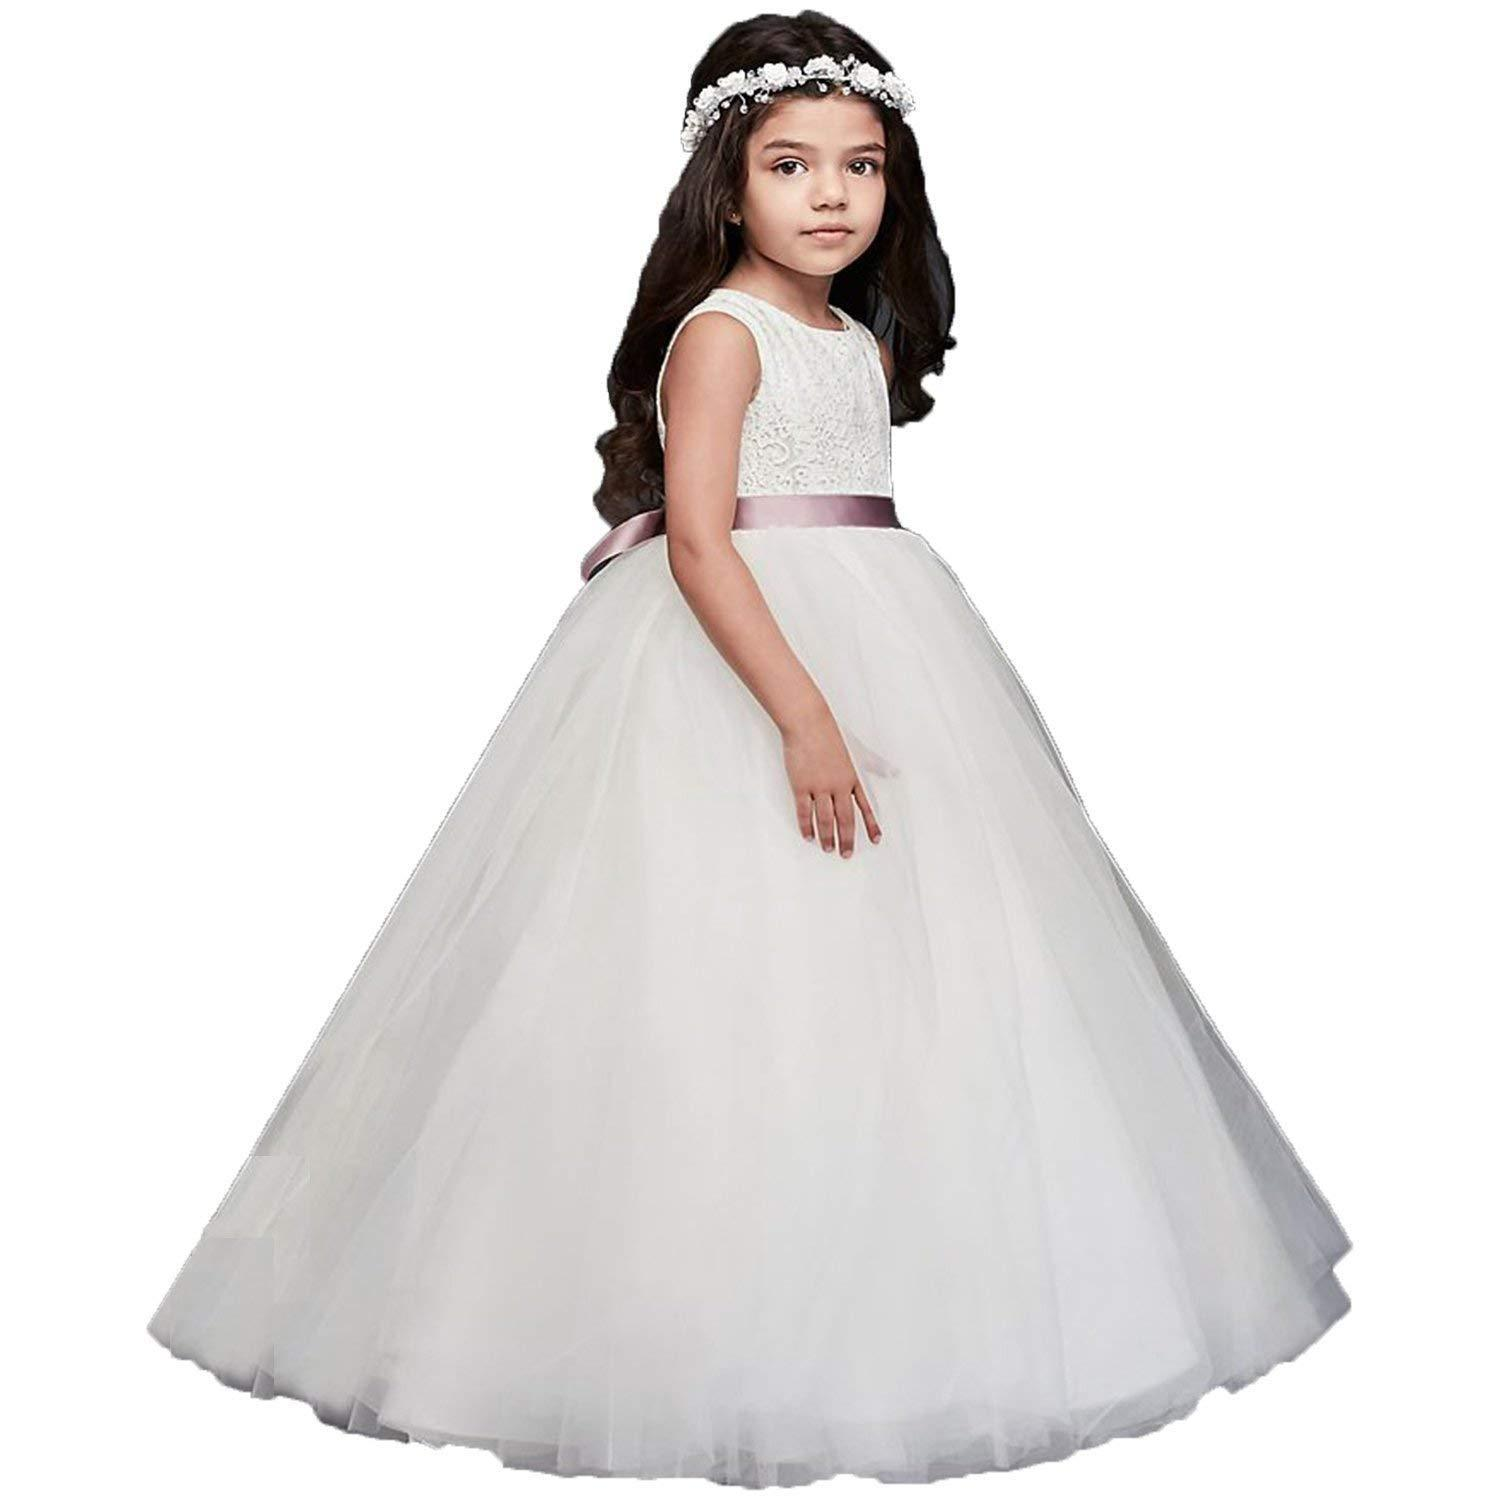 47ac34d99897e Ivory Fancy Lace Flower Girl Dress with Heart Cutout On Back 2-14 Years Old  Girl Bridesmaid Dress Communion